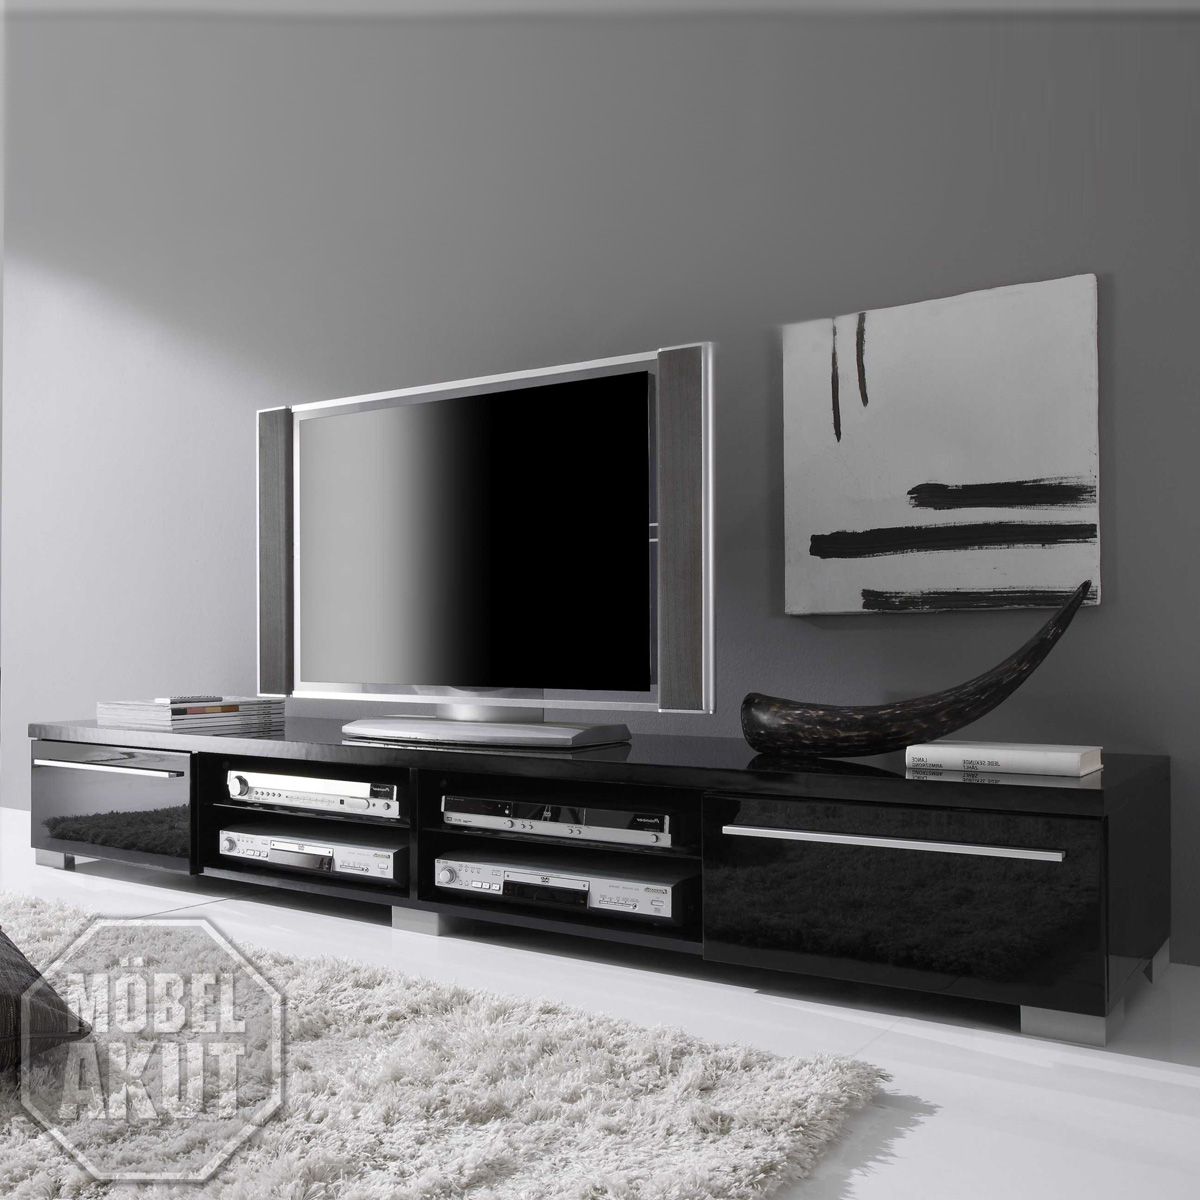 tv board beta lowboard schwarz echt hochglanz neu ebay. Black Bedroom Furniture Sets. Home Design Ideas